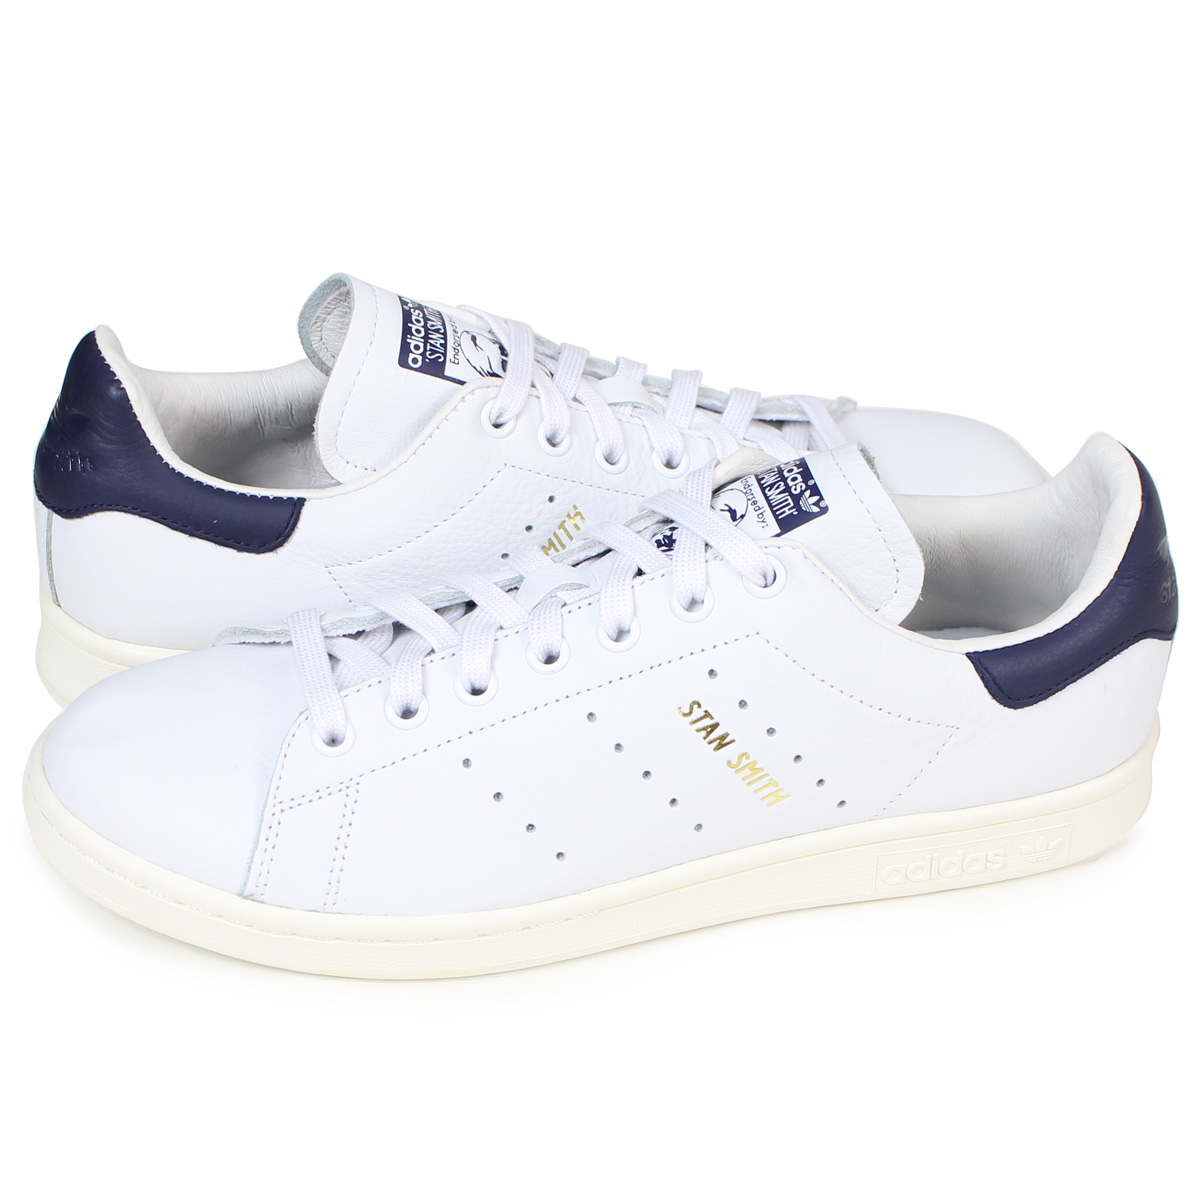 c528b7949c1 adidas originals STAN SMITH Adidas Stan Smith sneakers men CQ2870 shoes  white [load planned Shinnyu ...